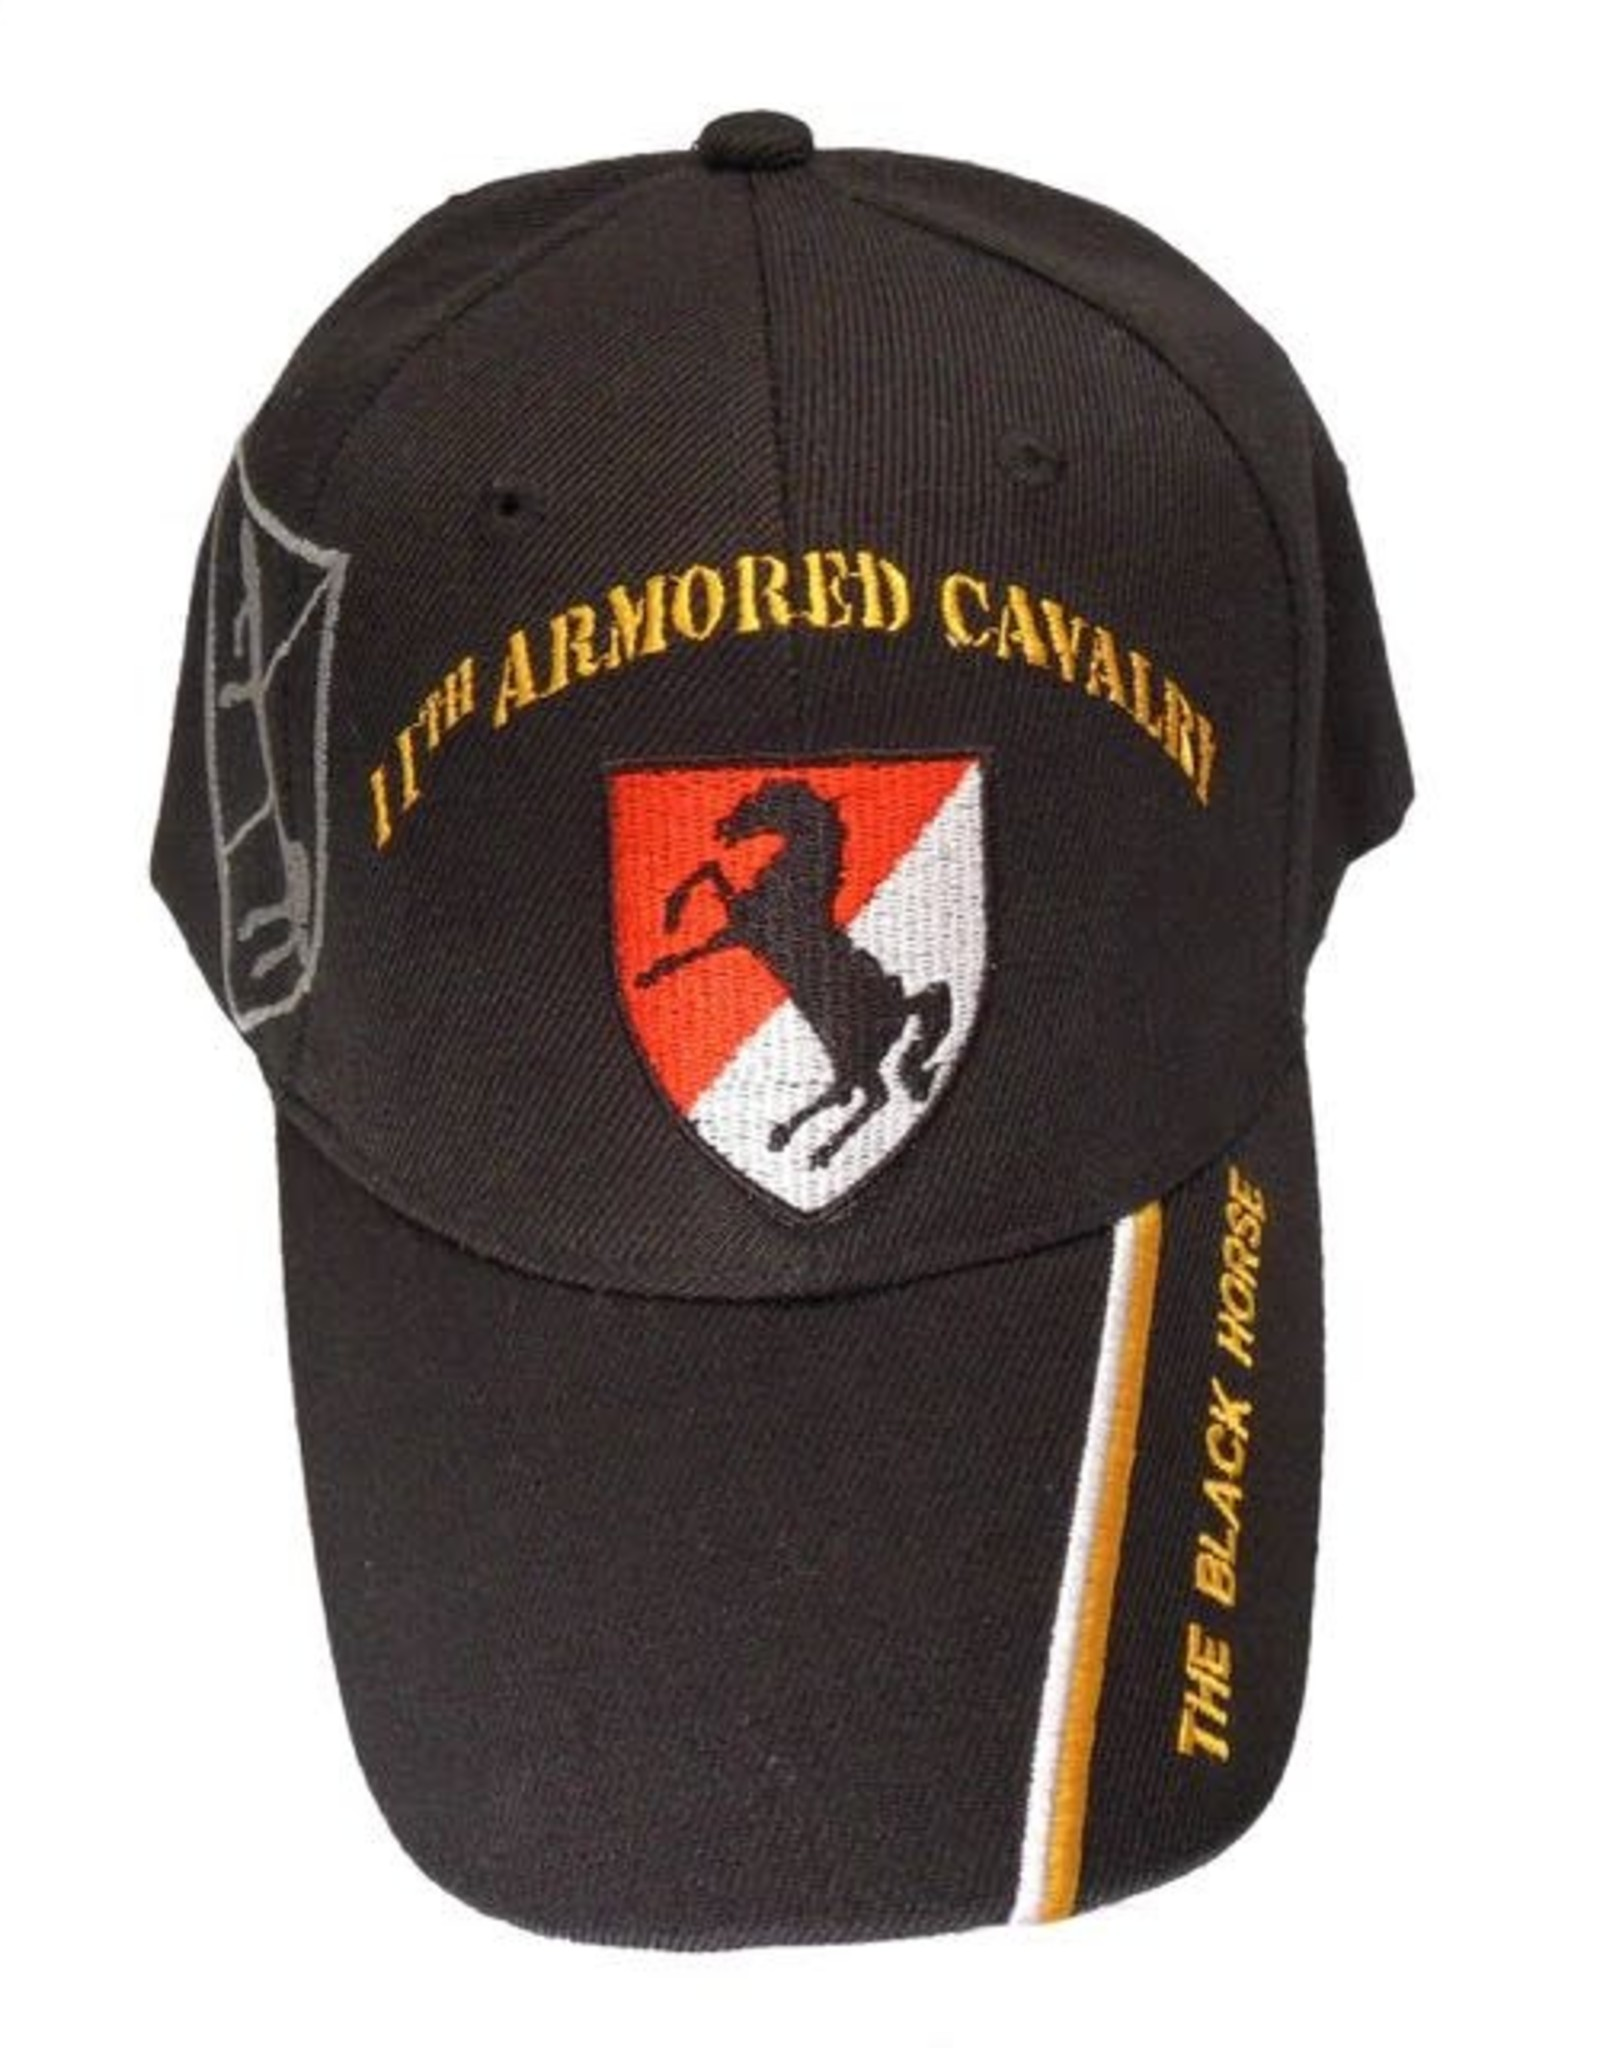 MidMil Army 11th Armored Cavalry Regiment Hat with Motto Black